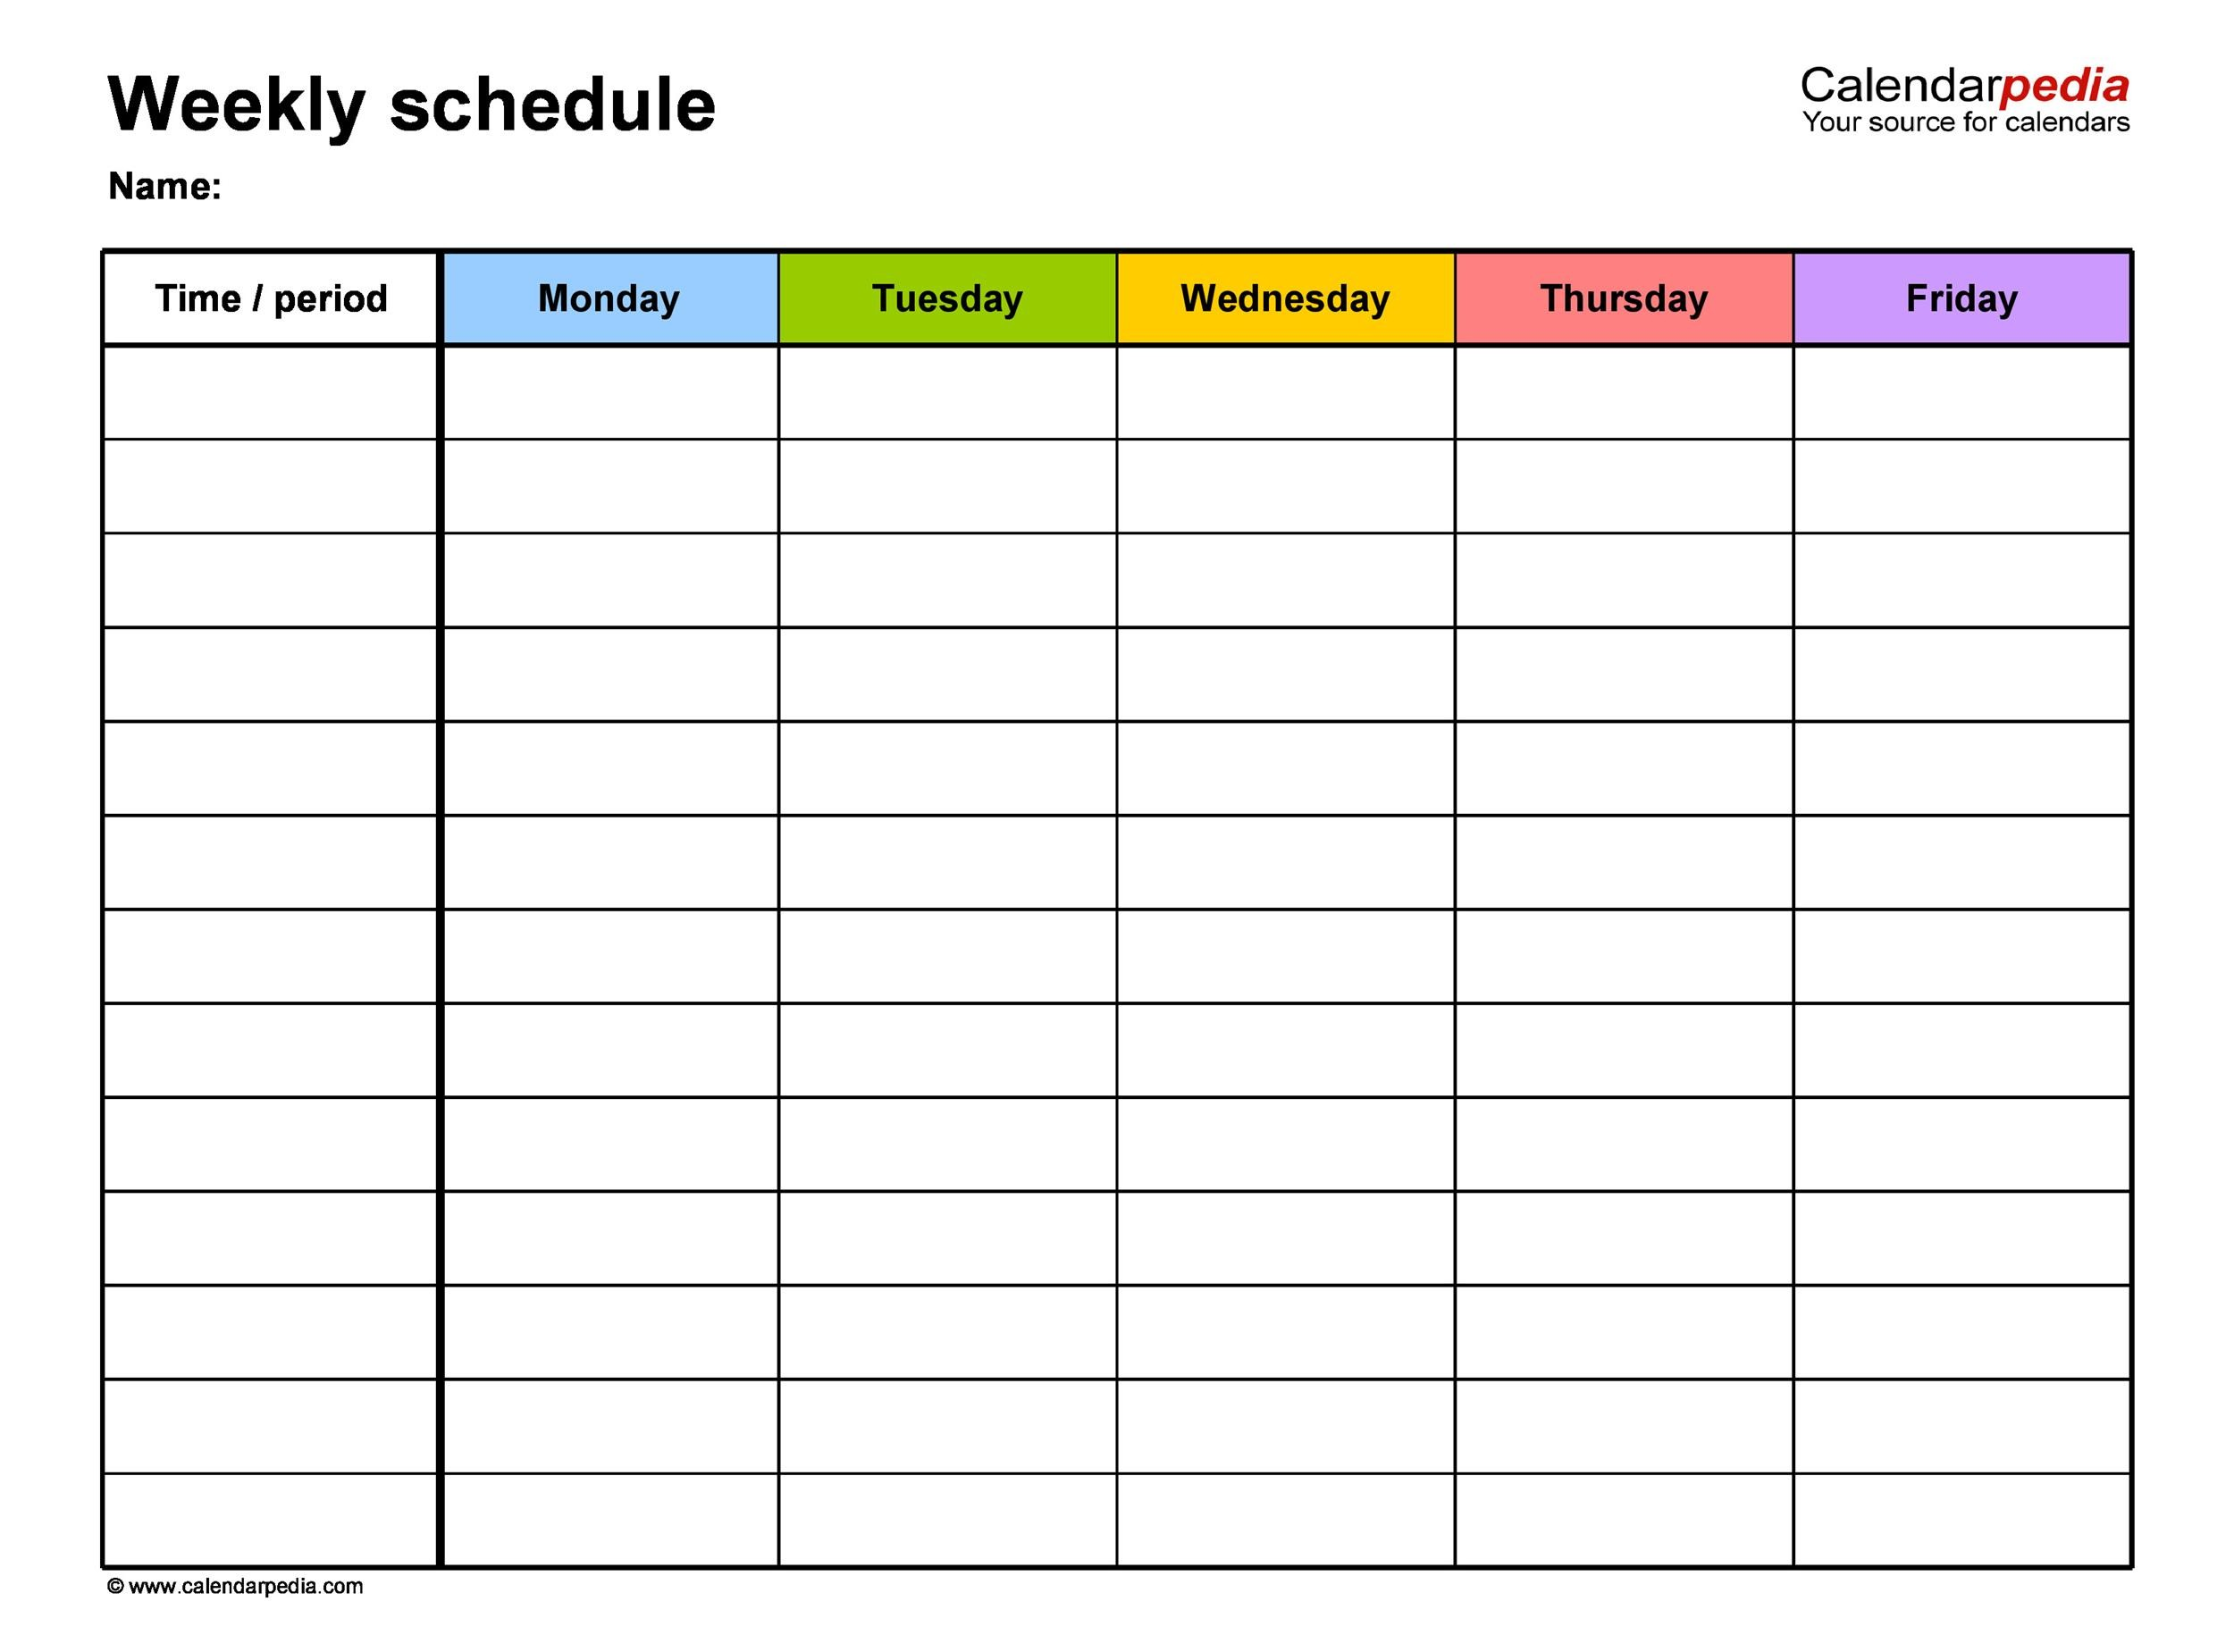 17 Perfect Daily Work Schedule Templates - Template Lab - work schedule